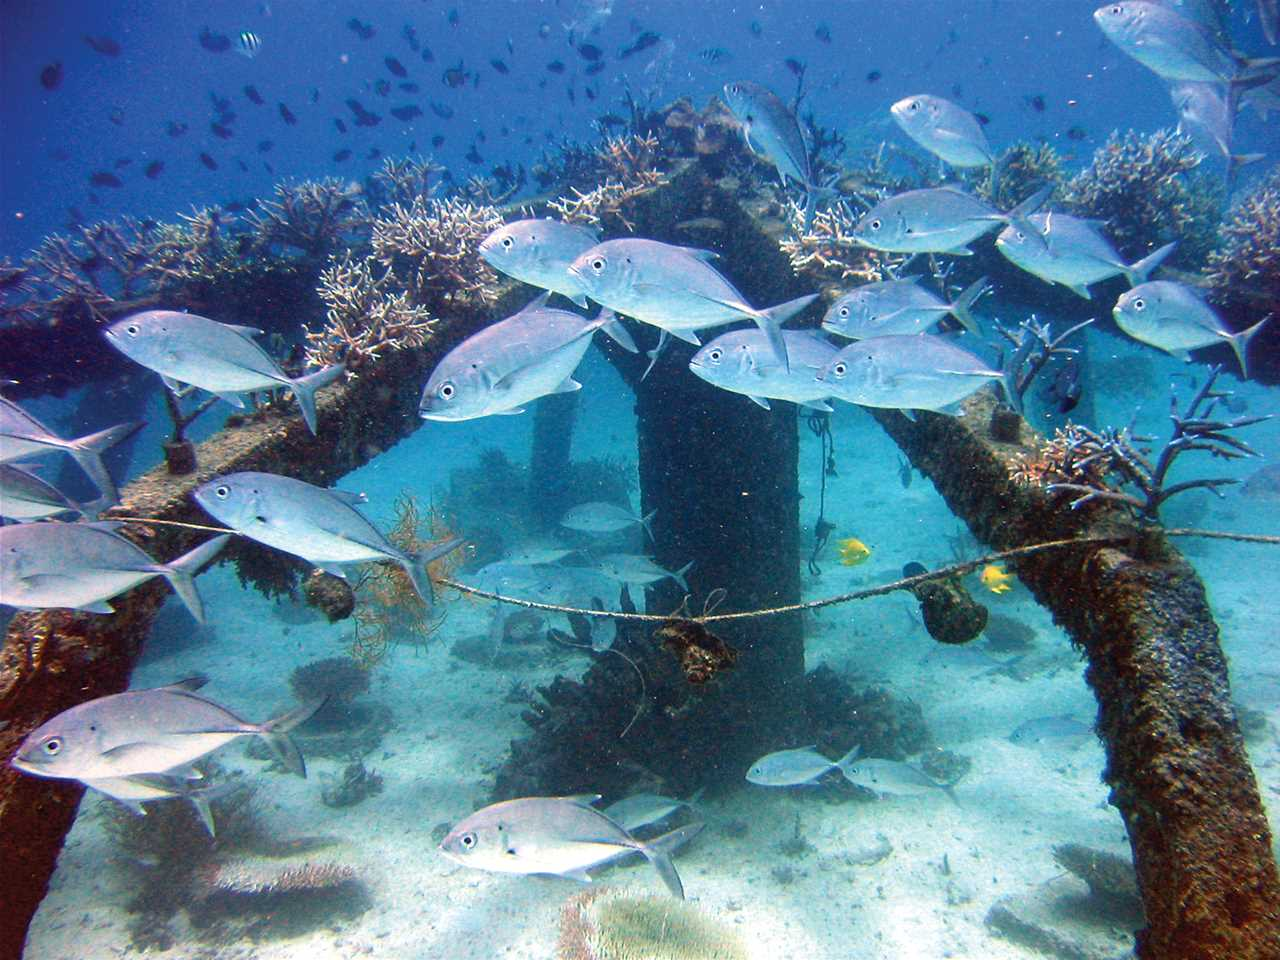 Marine biodiversity and fish stocks are vital for local communities who rely on fishing …